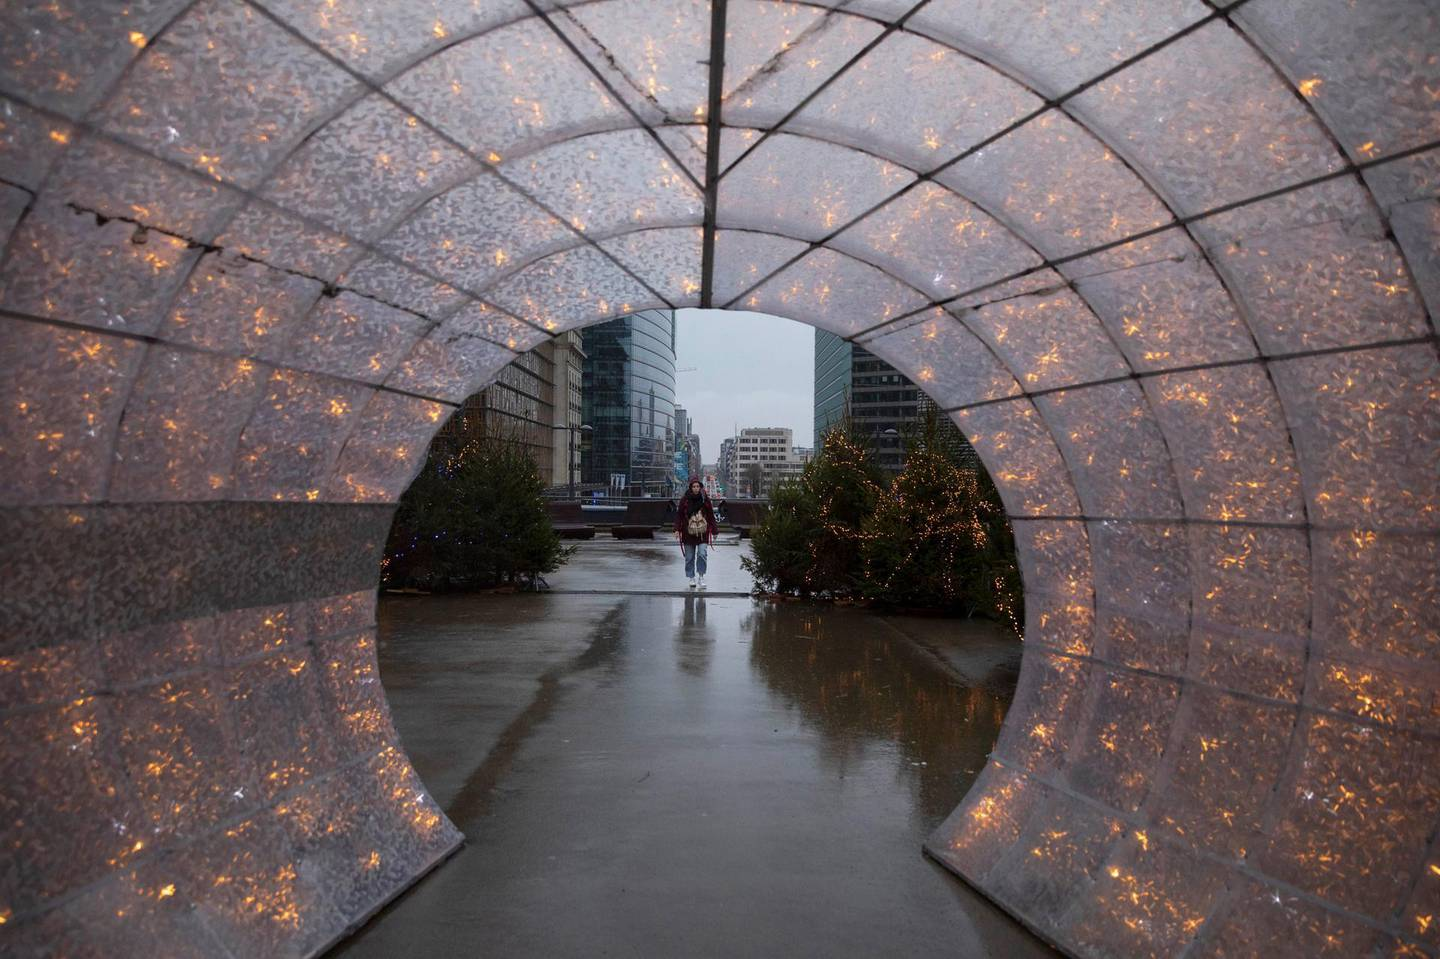 A woman walks amongst Christmas decorations outside of EU headquarters in Brussels, Wednesday, Dec. 23, 2020. France insisted on Wednesday that European Union negotiators should not yield to any time pressure imposed by the Jan. 1 economic cutoff date in the talks with Britain on a trade agreement in the wake of the Brexit divorce, arguing no deal would be better than a bad one. (AP Photo/Virginia Mayo)